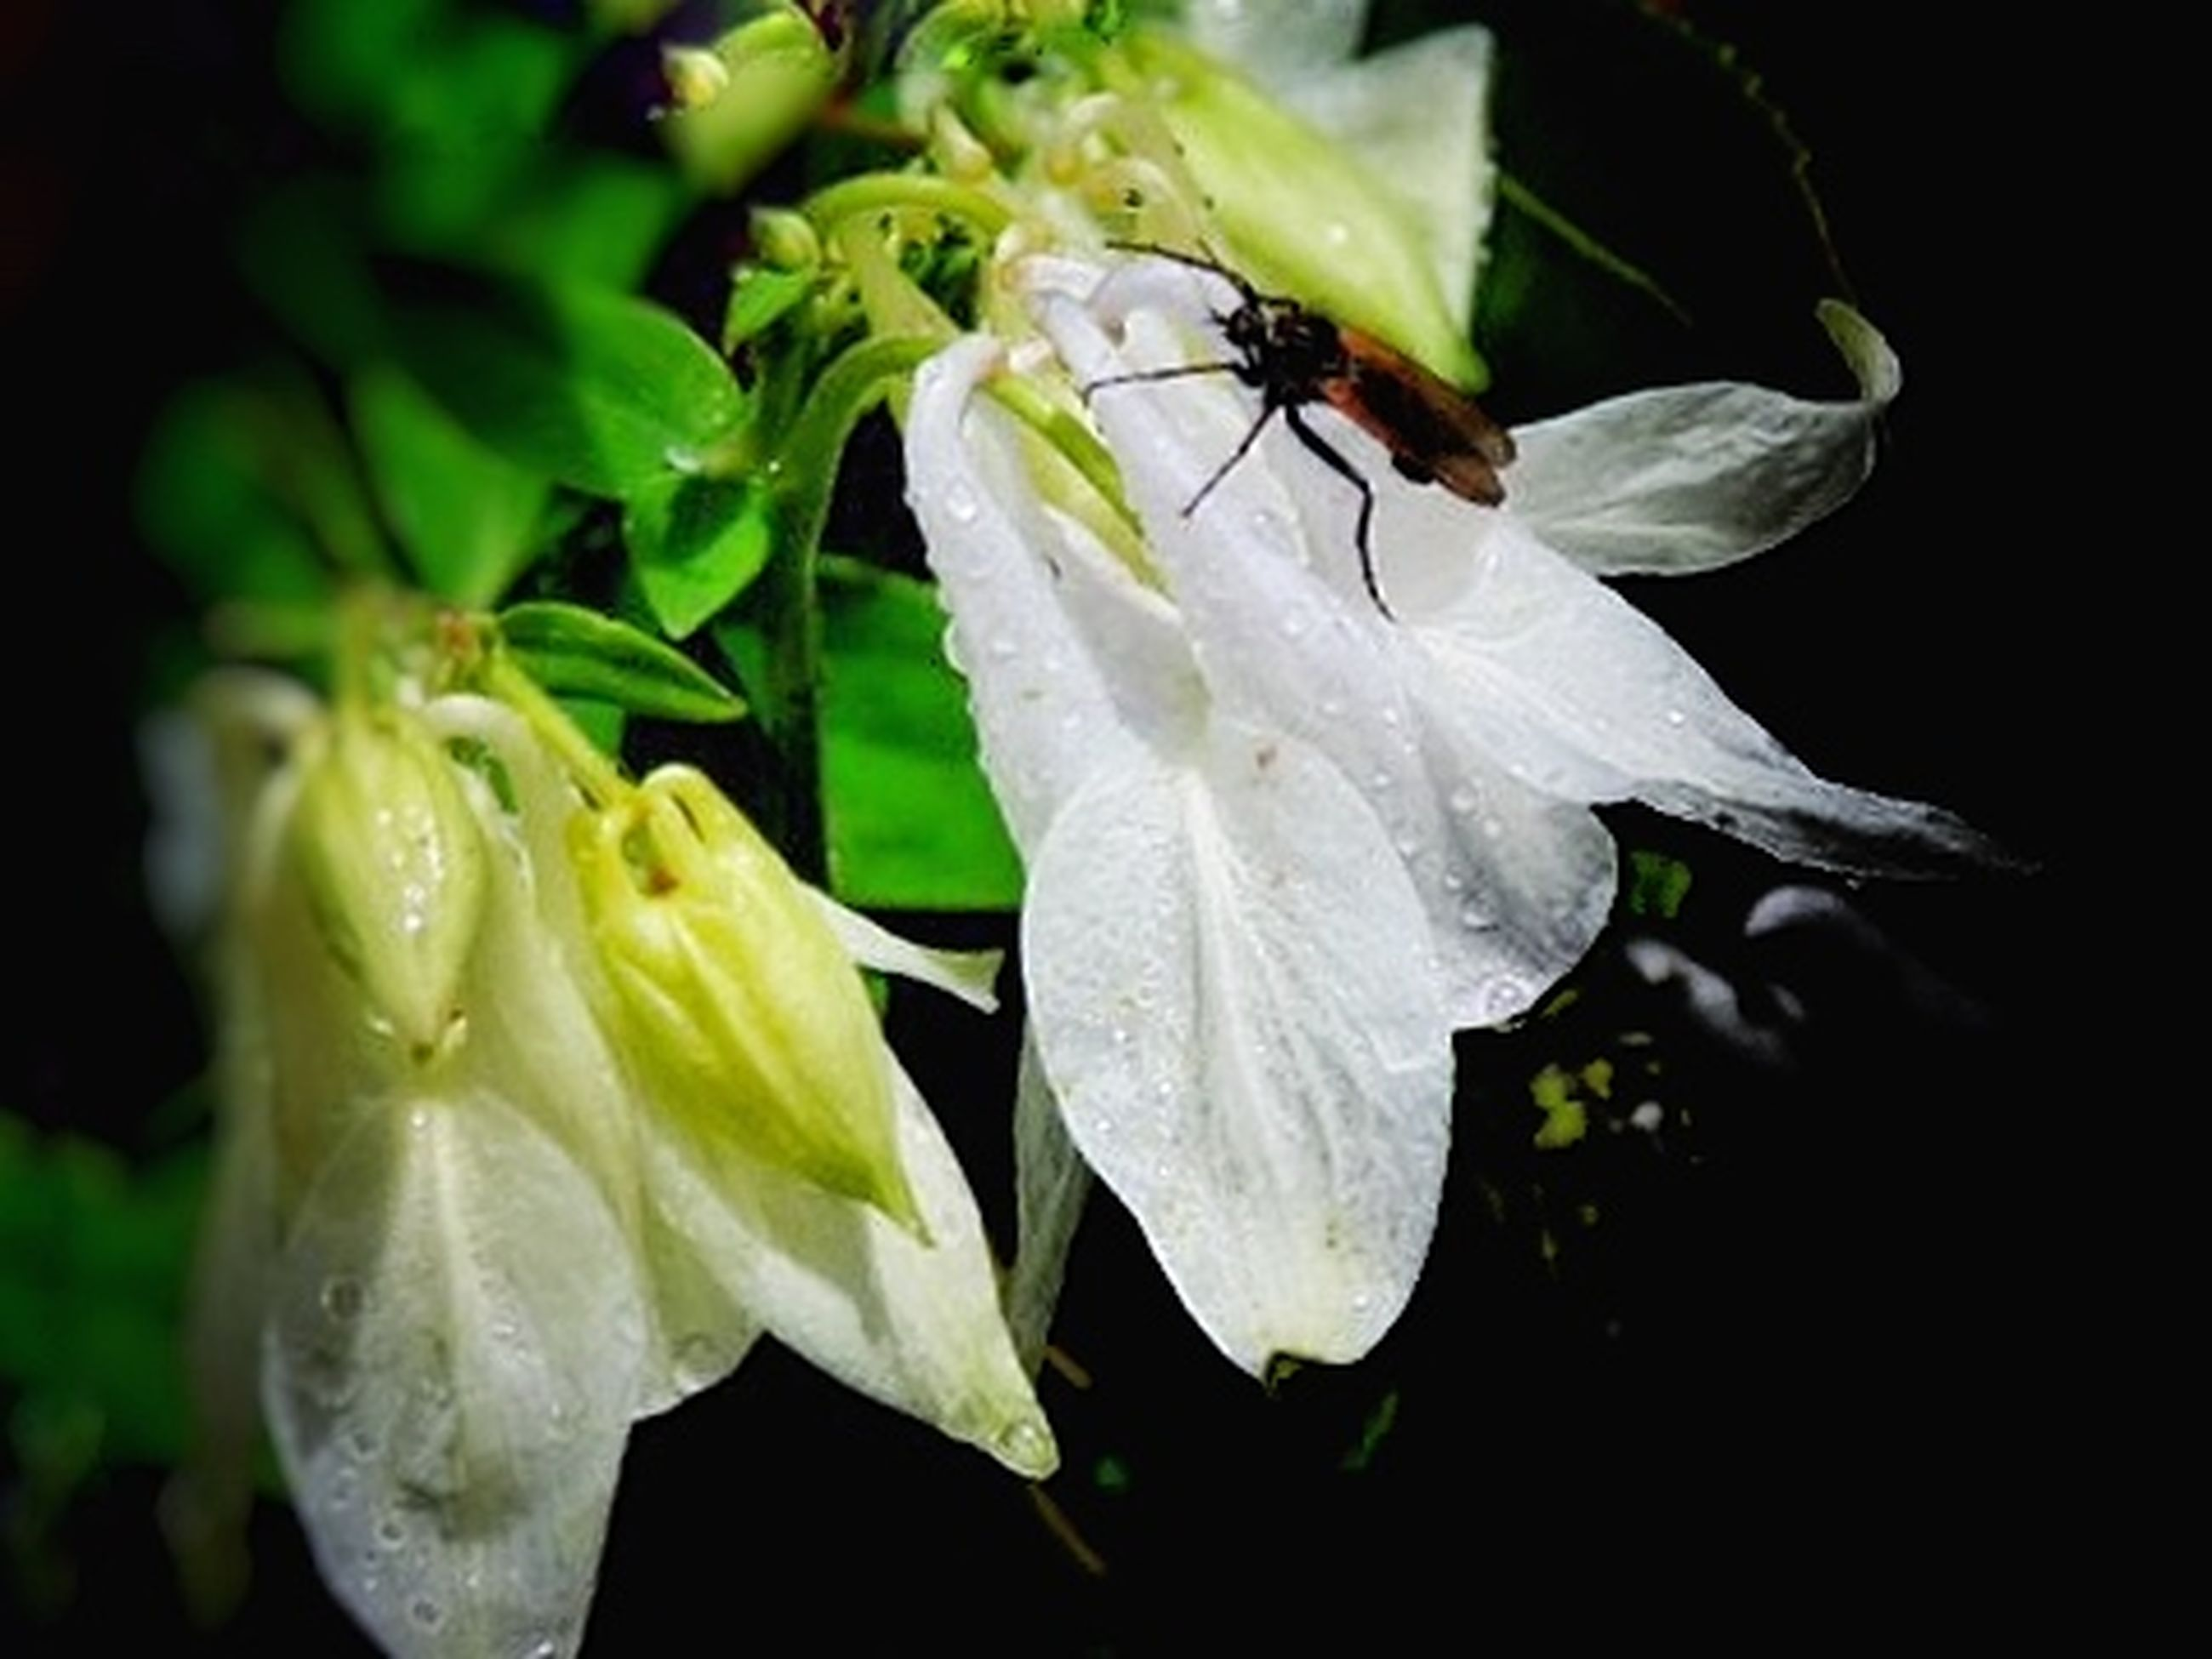 insect, animal themes, one animal, flower, animals in the wild, wildlife, petal, fragility, freshness, close-up, bee, nature, flower head, beauty in nature, focus on foreground, growth, pollination, white color, flying, plant